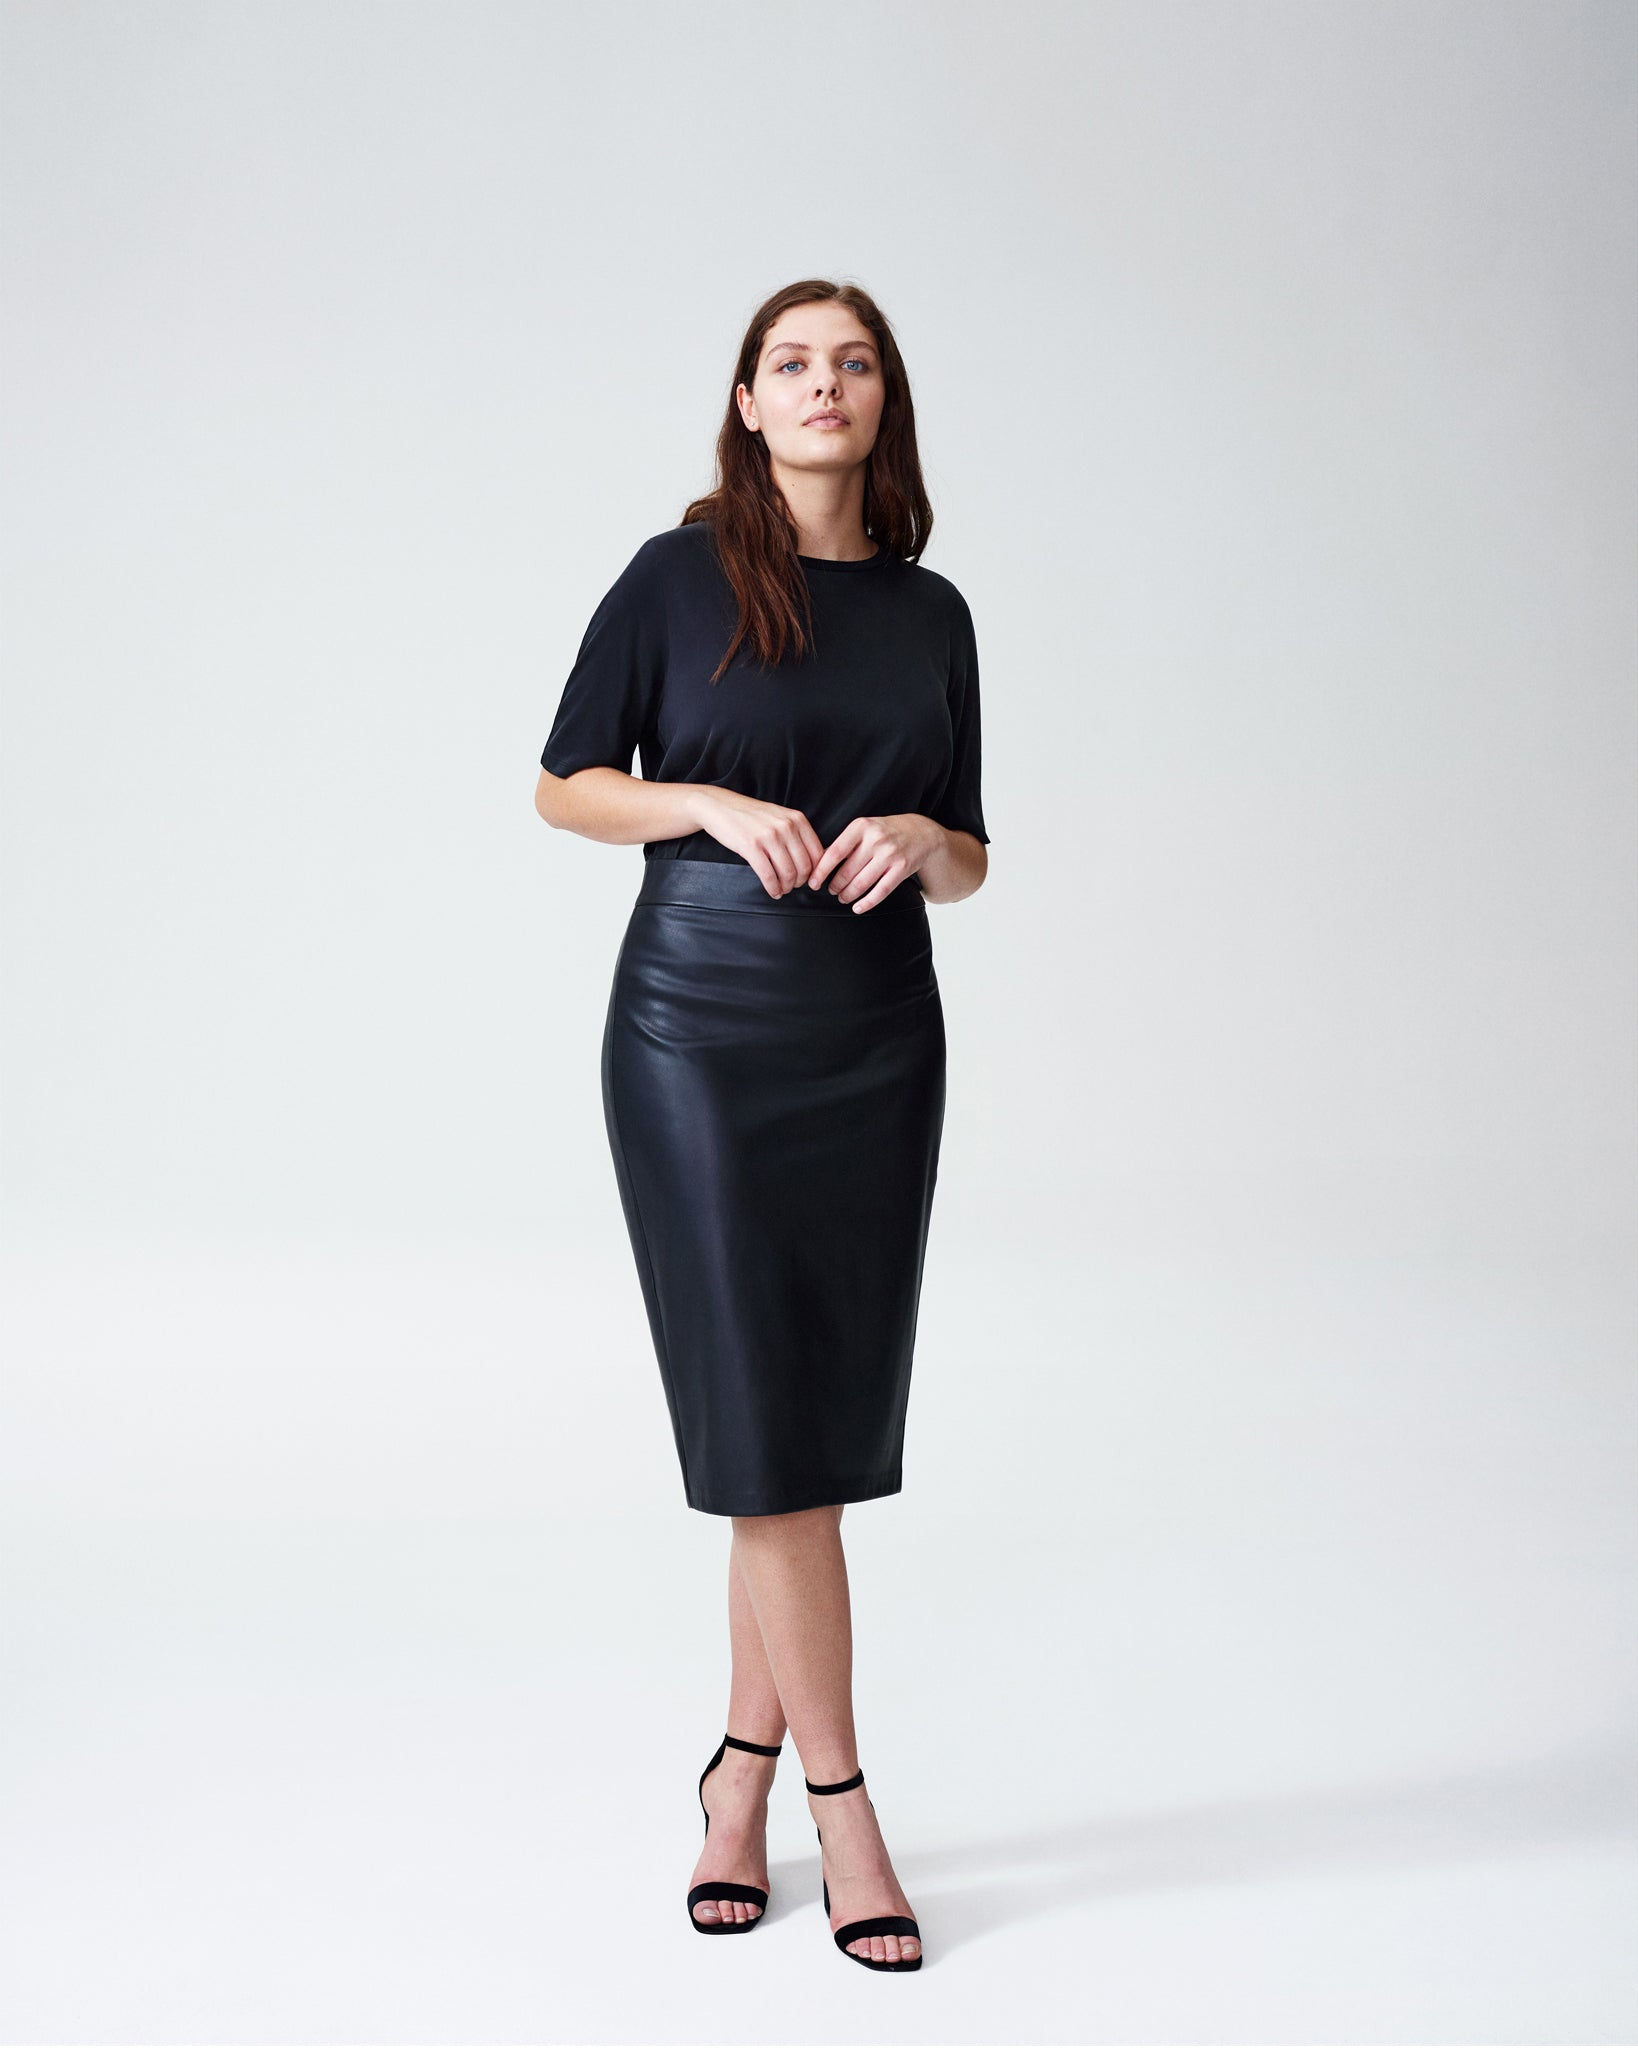 Sillaro Leatherette Pencil Skirt - Black